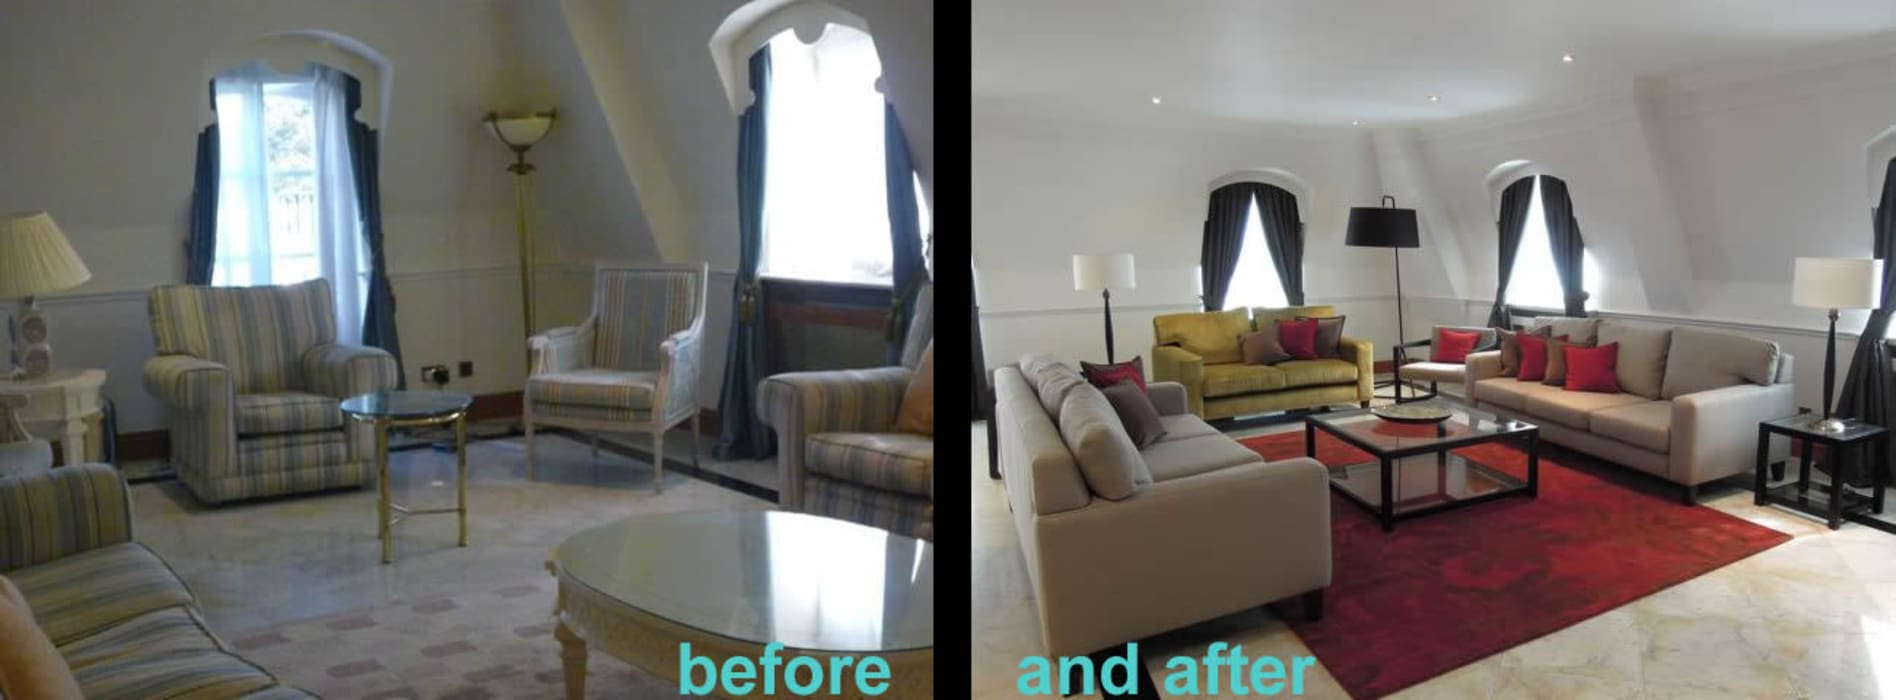 Before and after:  Living room by SlightlyQuirky ltd